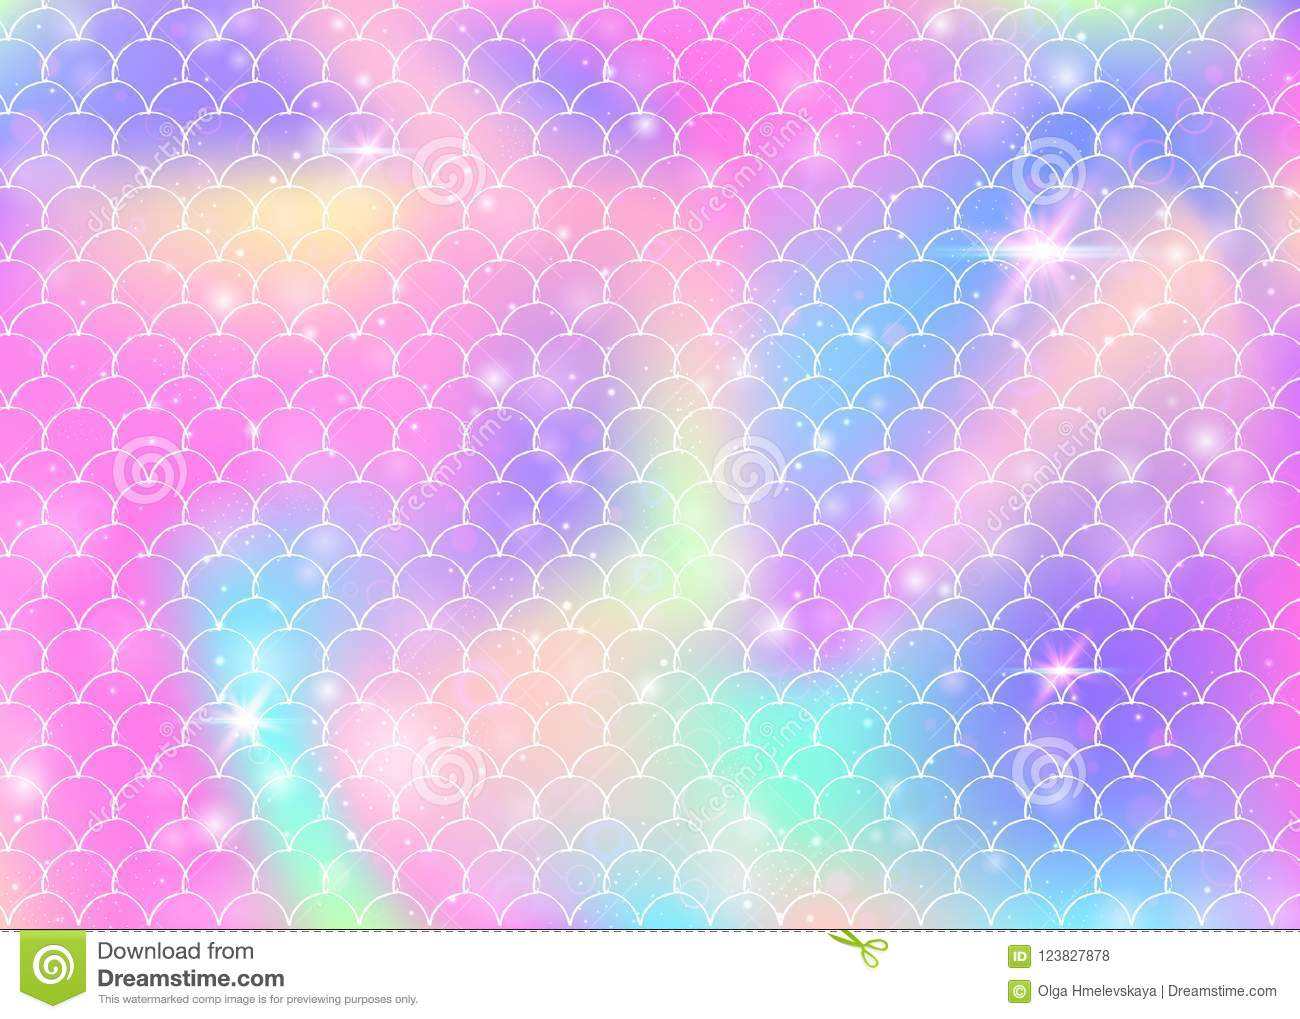 Cute Pattern Background Wallpaper Kawaii Cartoons Illustrations Amp Vector Stock Images